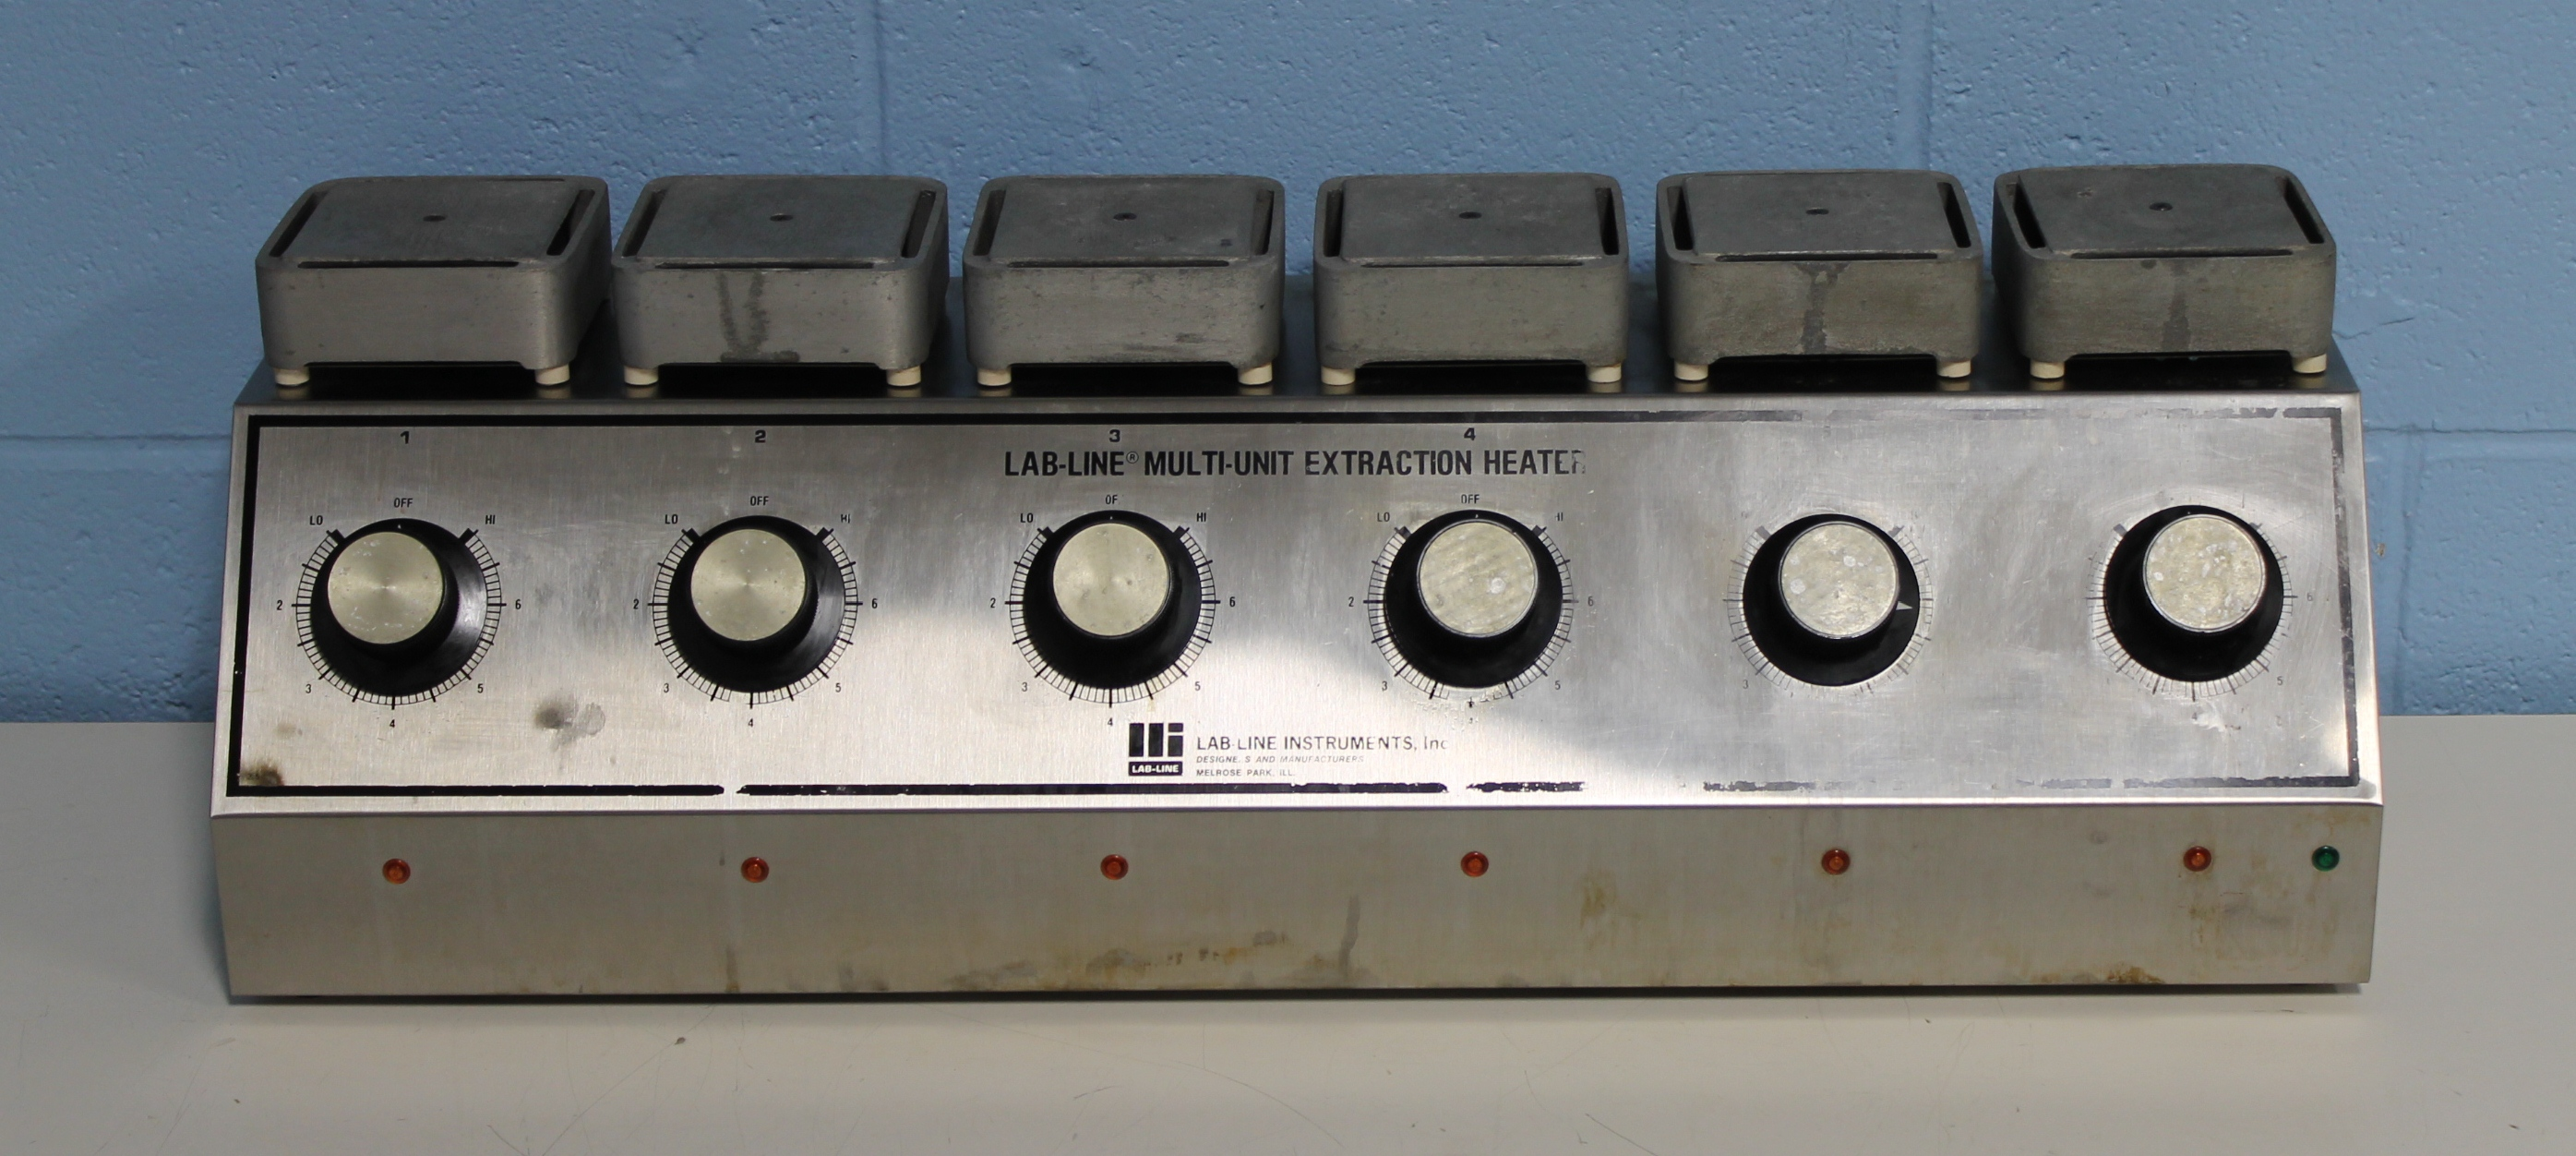 Refurbished Lab Line 5000 Multi Unit Extraction Heater